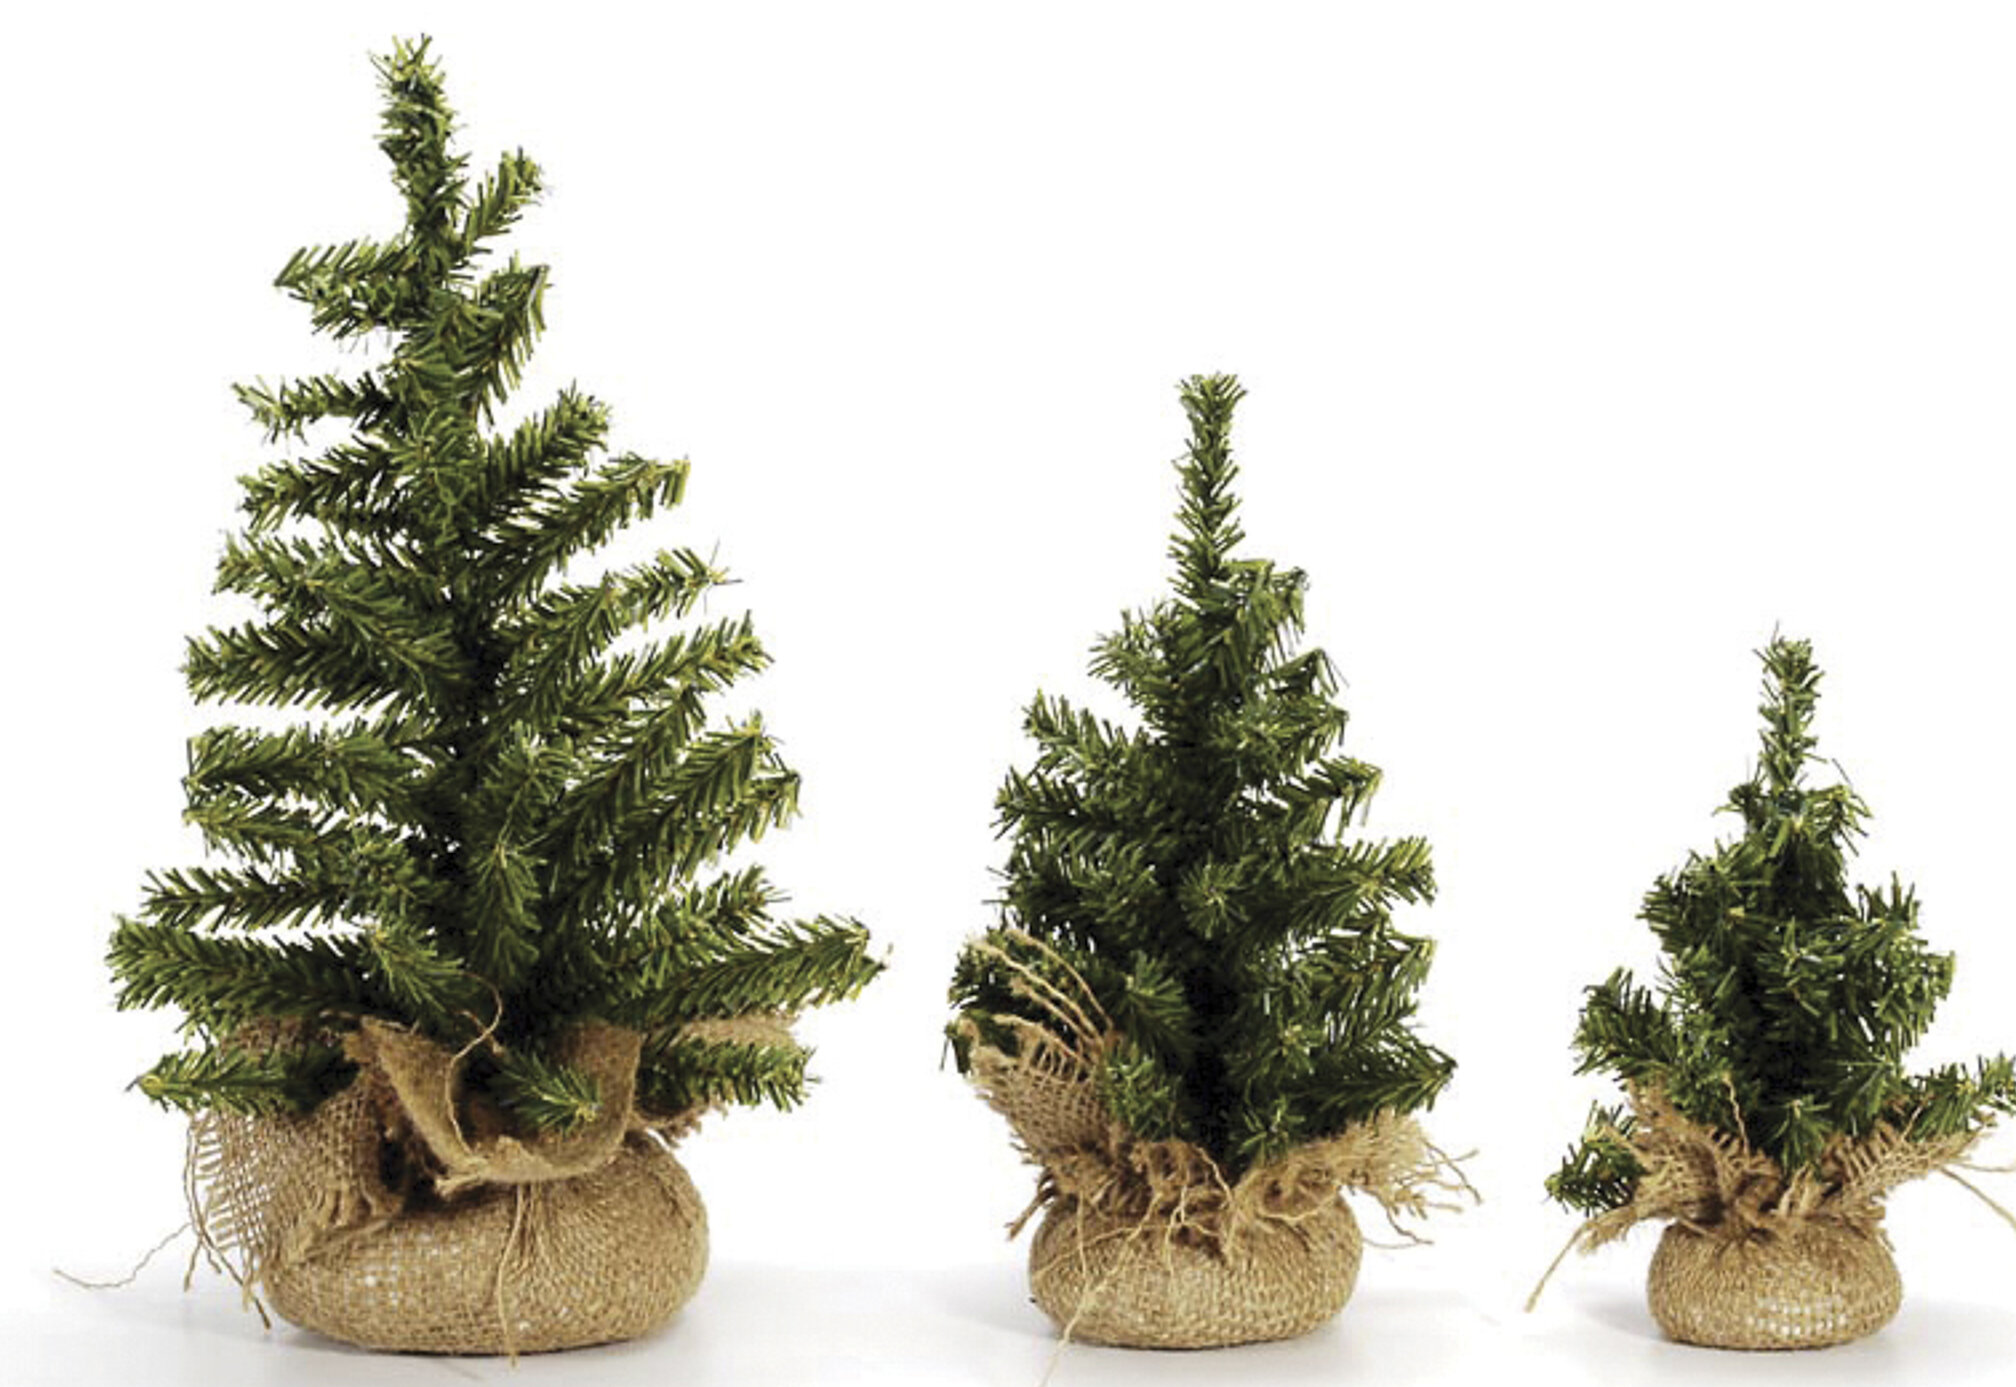 The Holiday Aisle Mini Canadian Green Pine Artificial